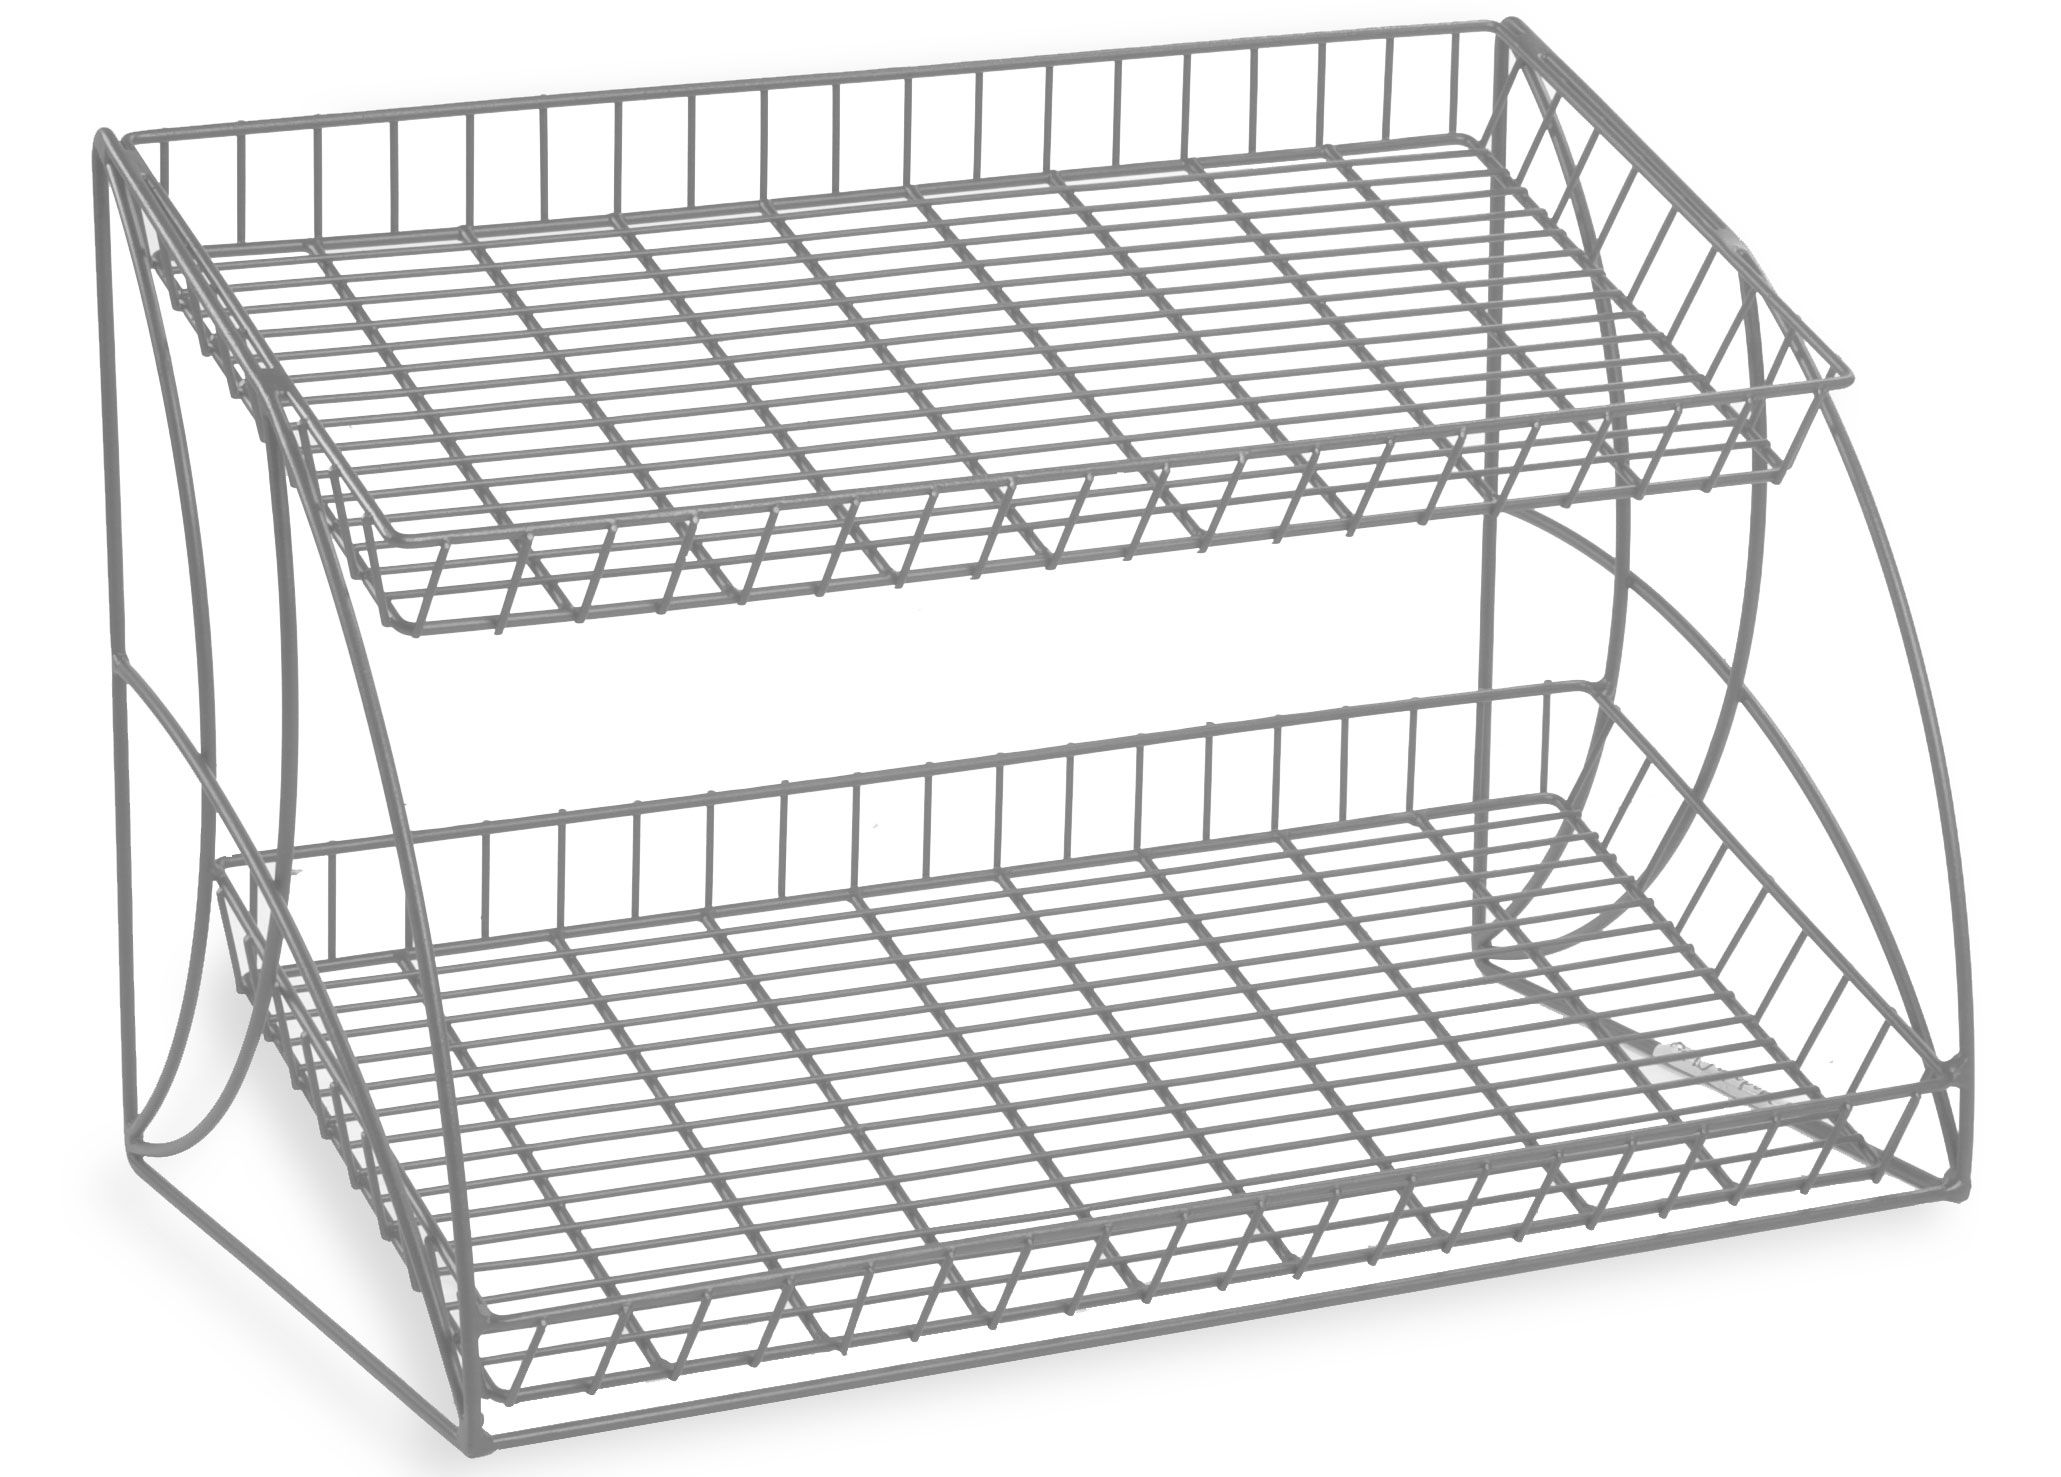 2 Tiered Wire Rack Display Tabletop 25 W Open Shelves Silver